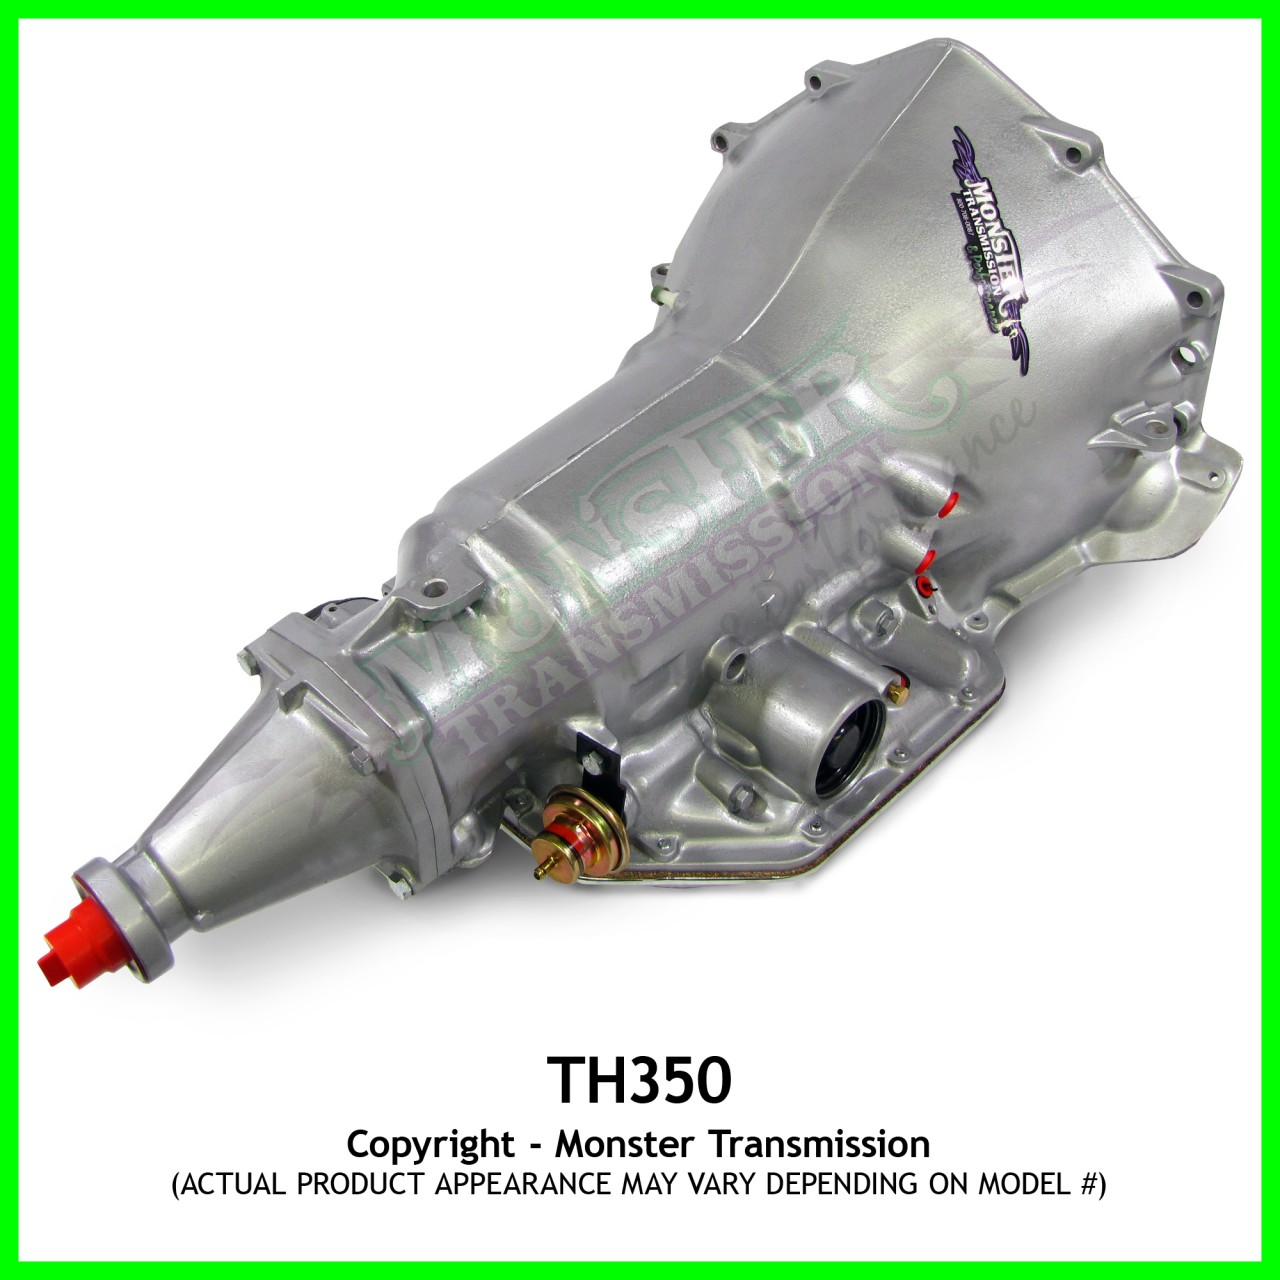 hight resolution of turbo 350 th350 transmission heavy duty performance 6 tail th350 th 350 turbo 350 monster 350 transmission camaro transmission nova